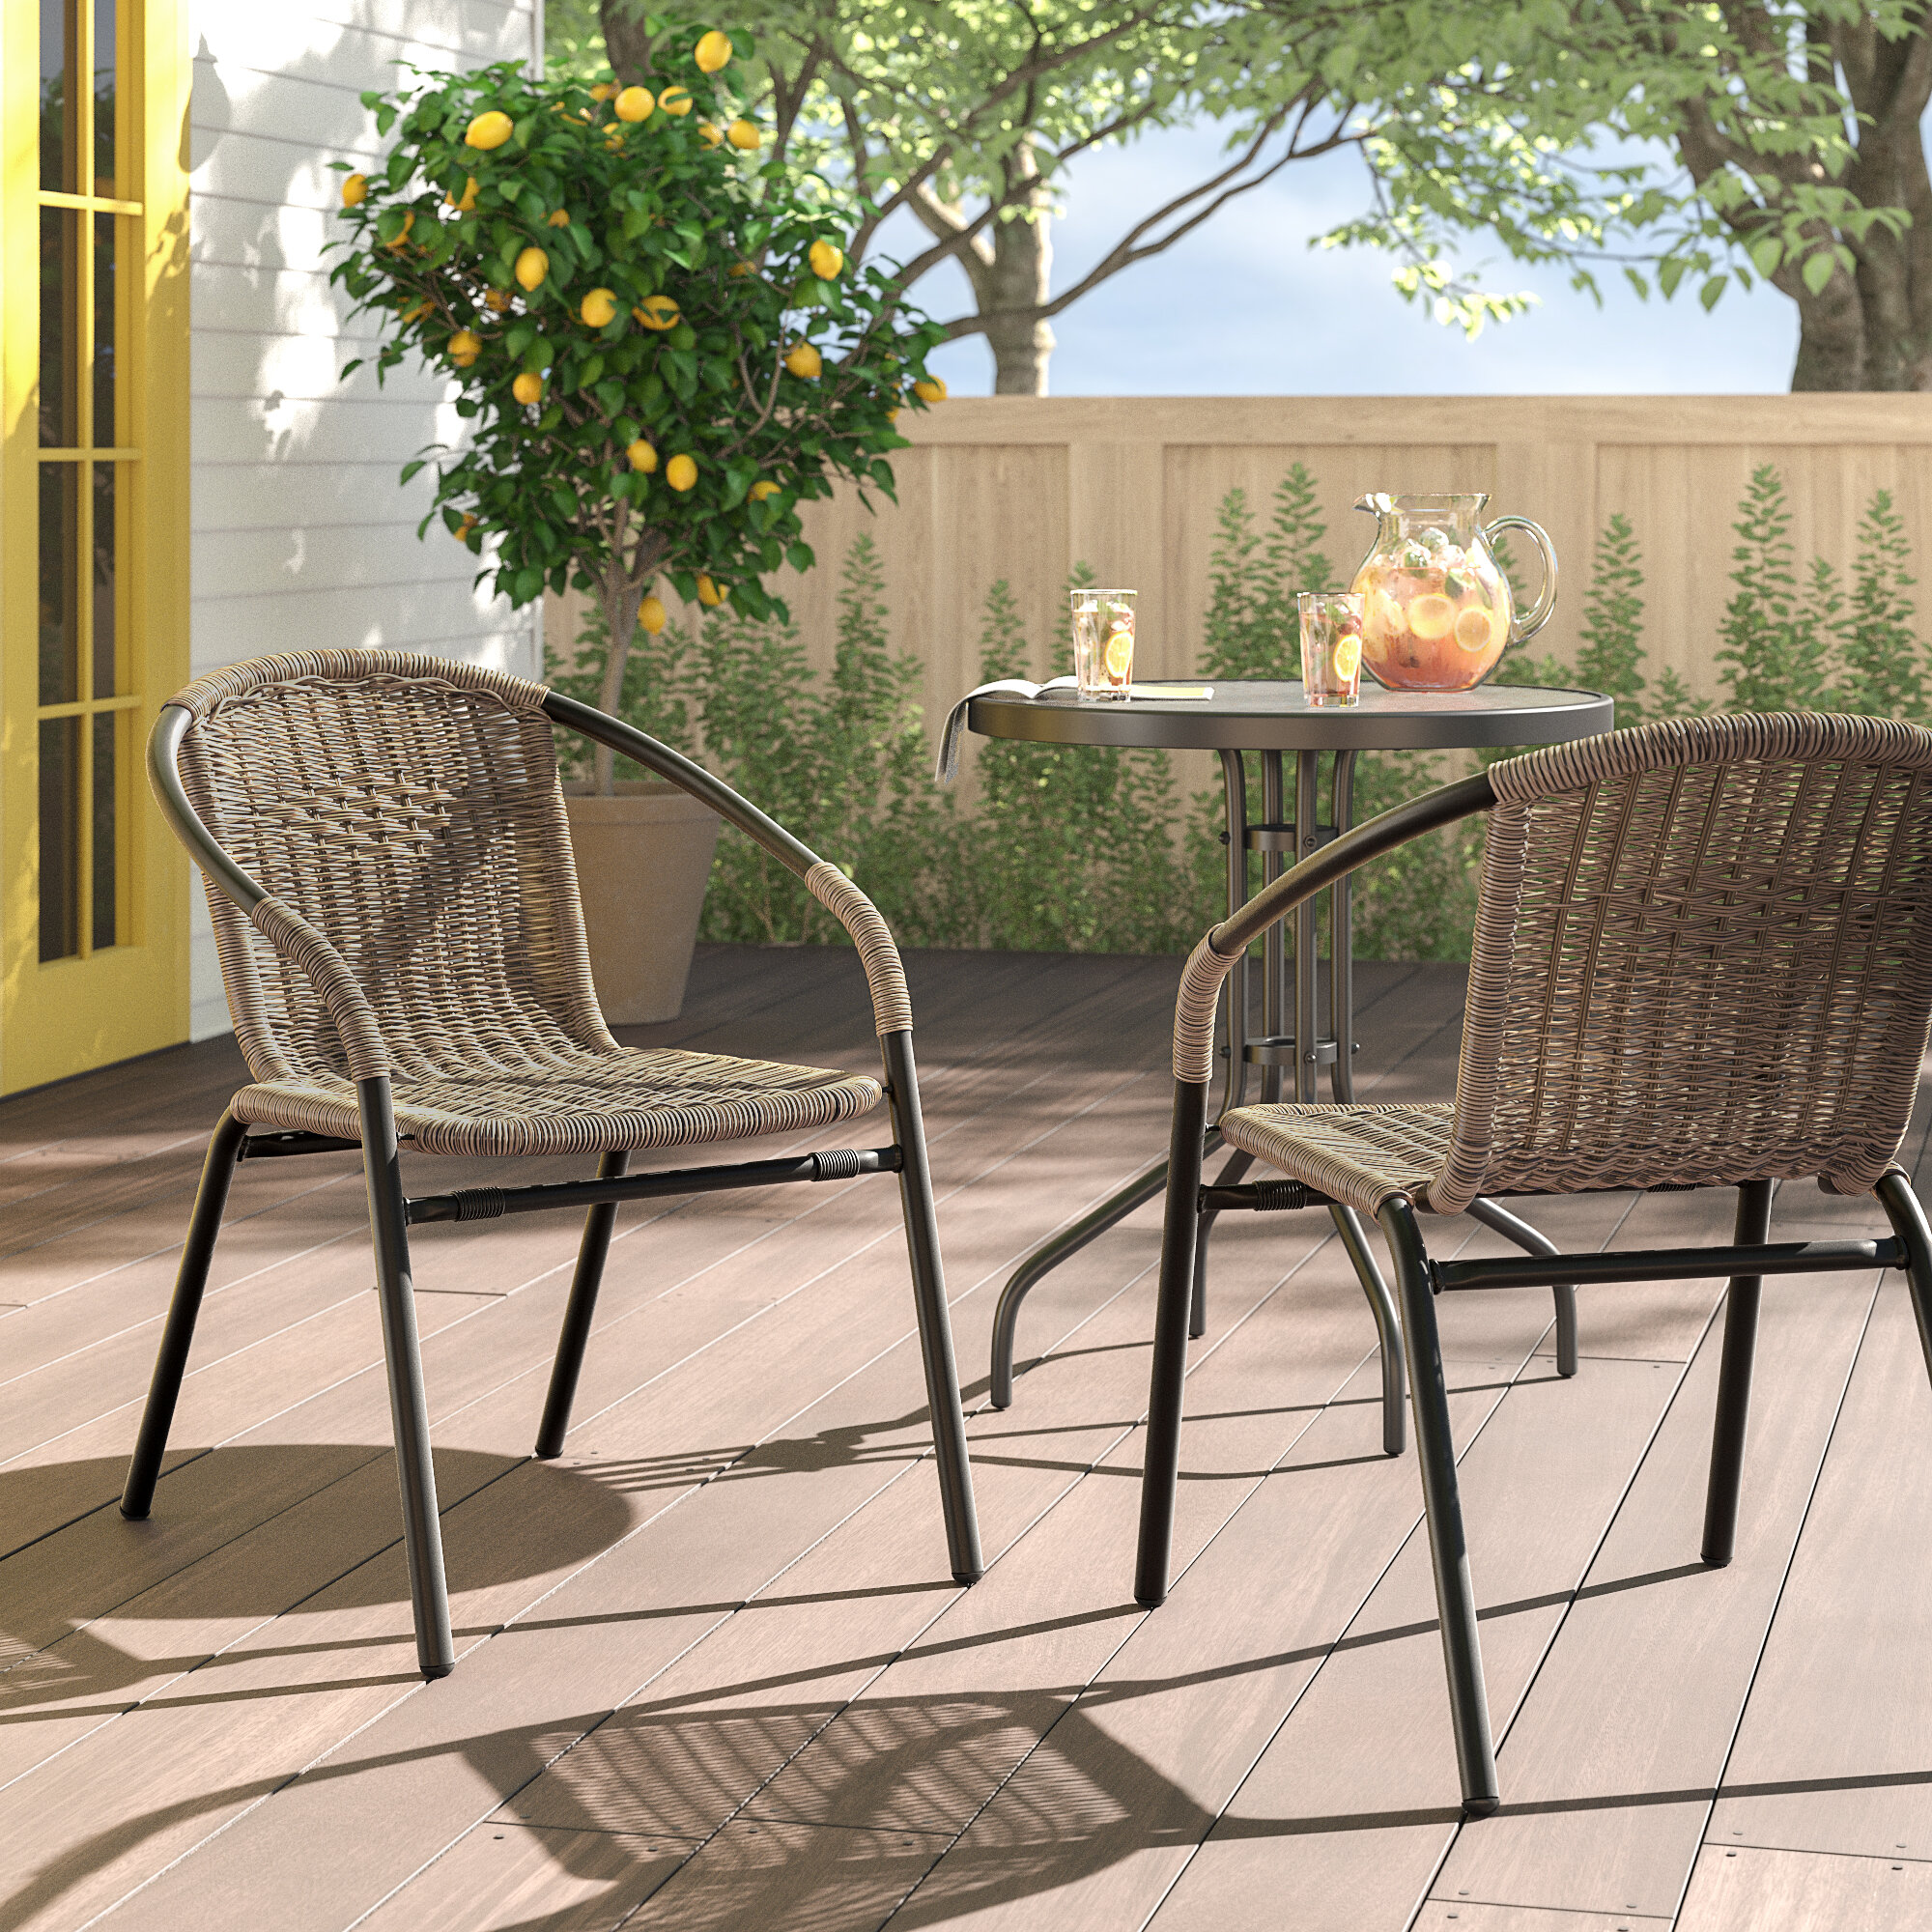 Tremendous Pineville Rattan Patio Dining Chair Gmtry Best Dining Table And Chair Ideas Images Gmtryco